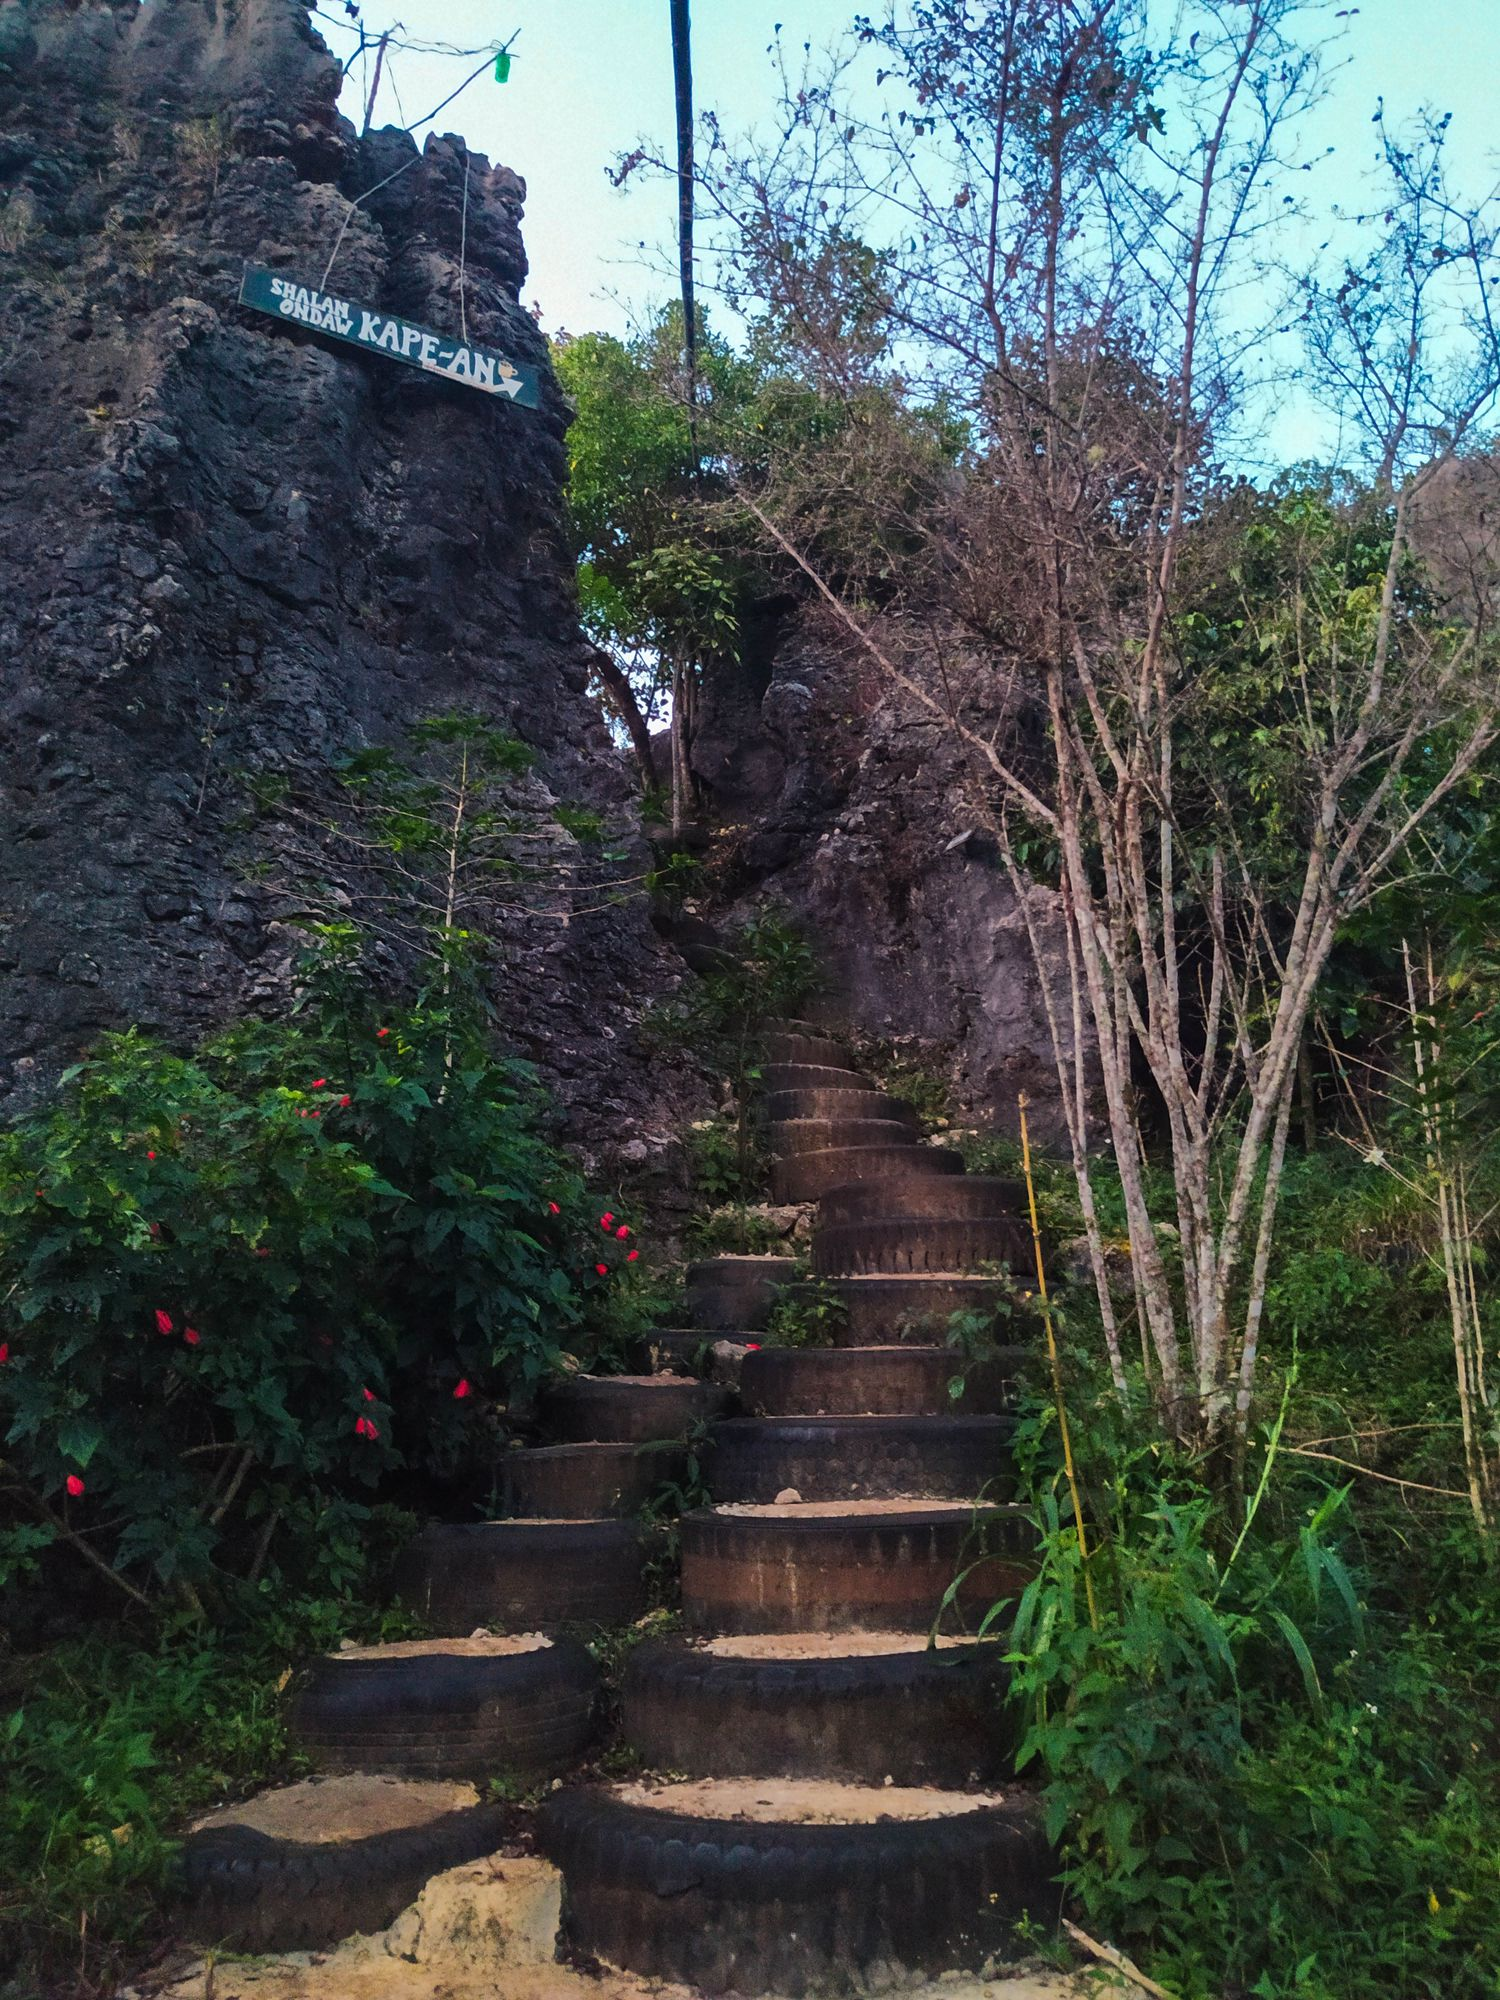 Stairs made out of waste tires and concrete going up and through a gap on a limestone cliff growing with vegetation